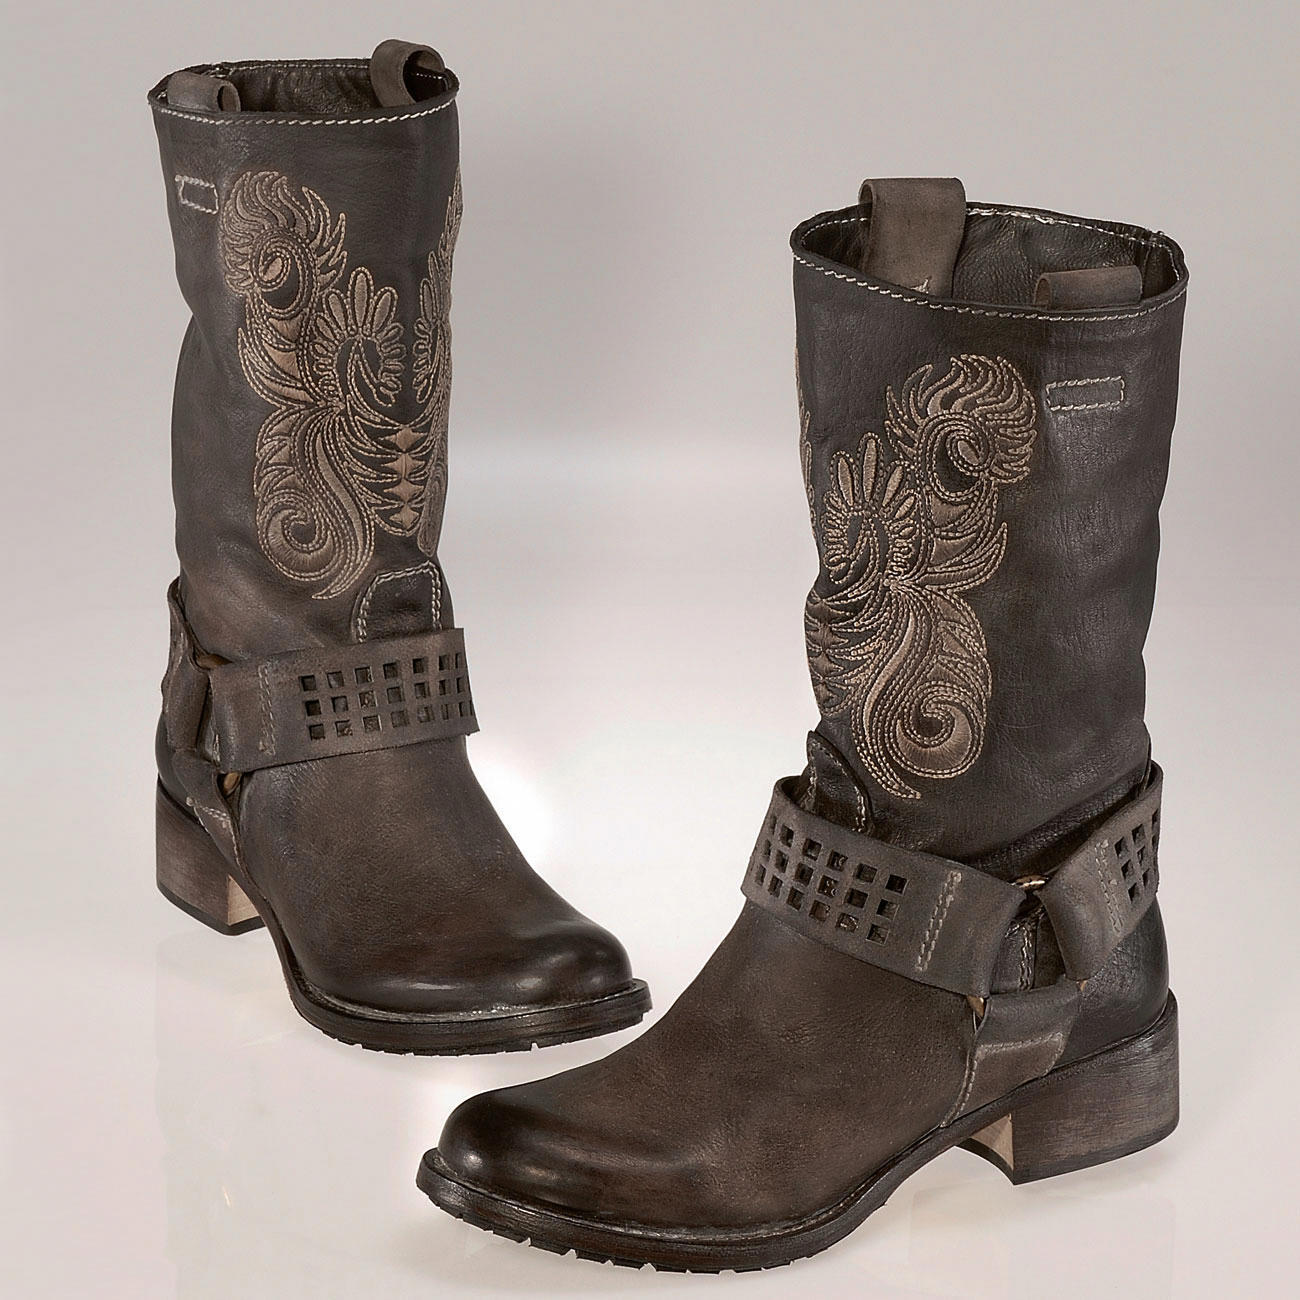 buy embroidered biker boots 3 year product guarantee. Black Bedroom Furniture Sets. Home Design Ideas